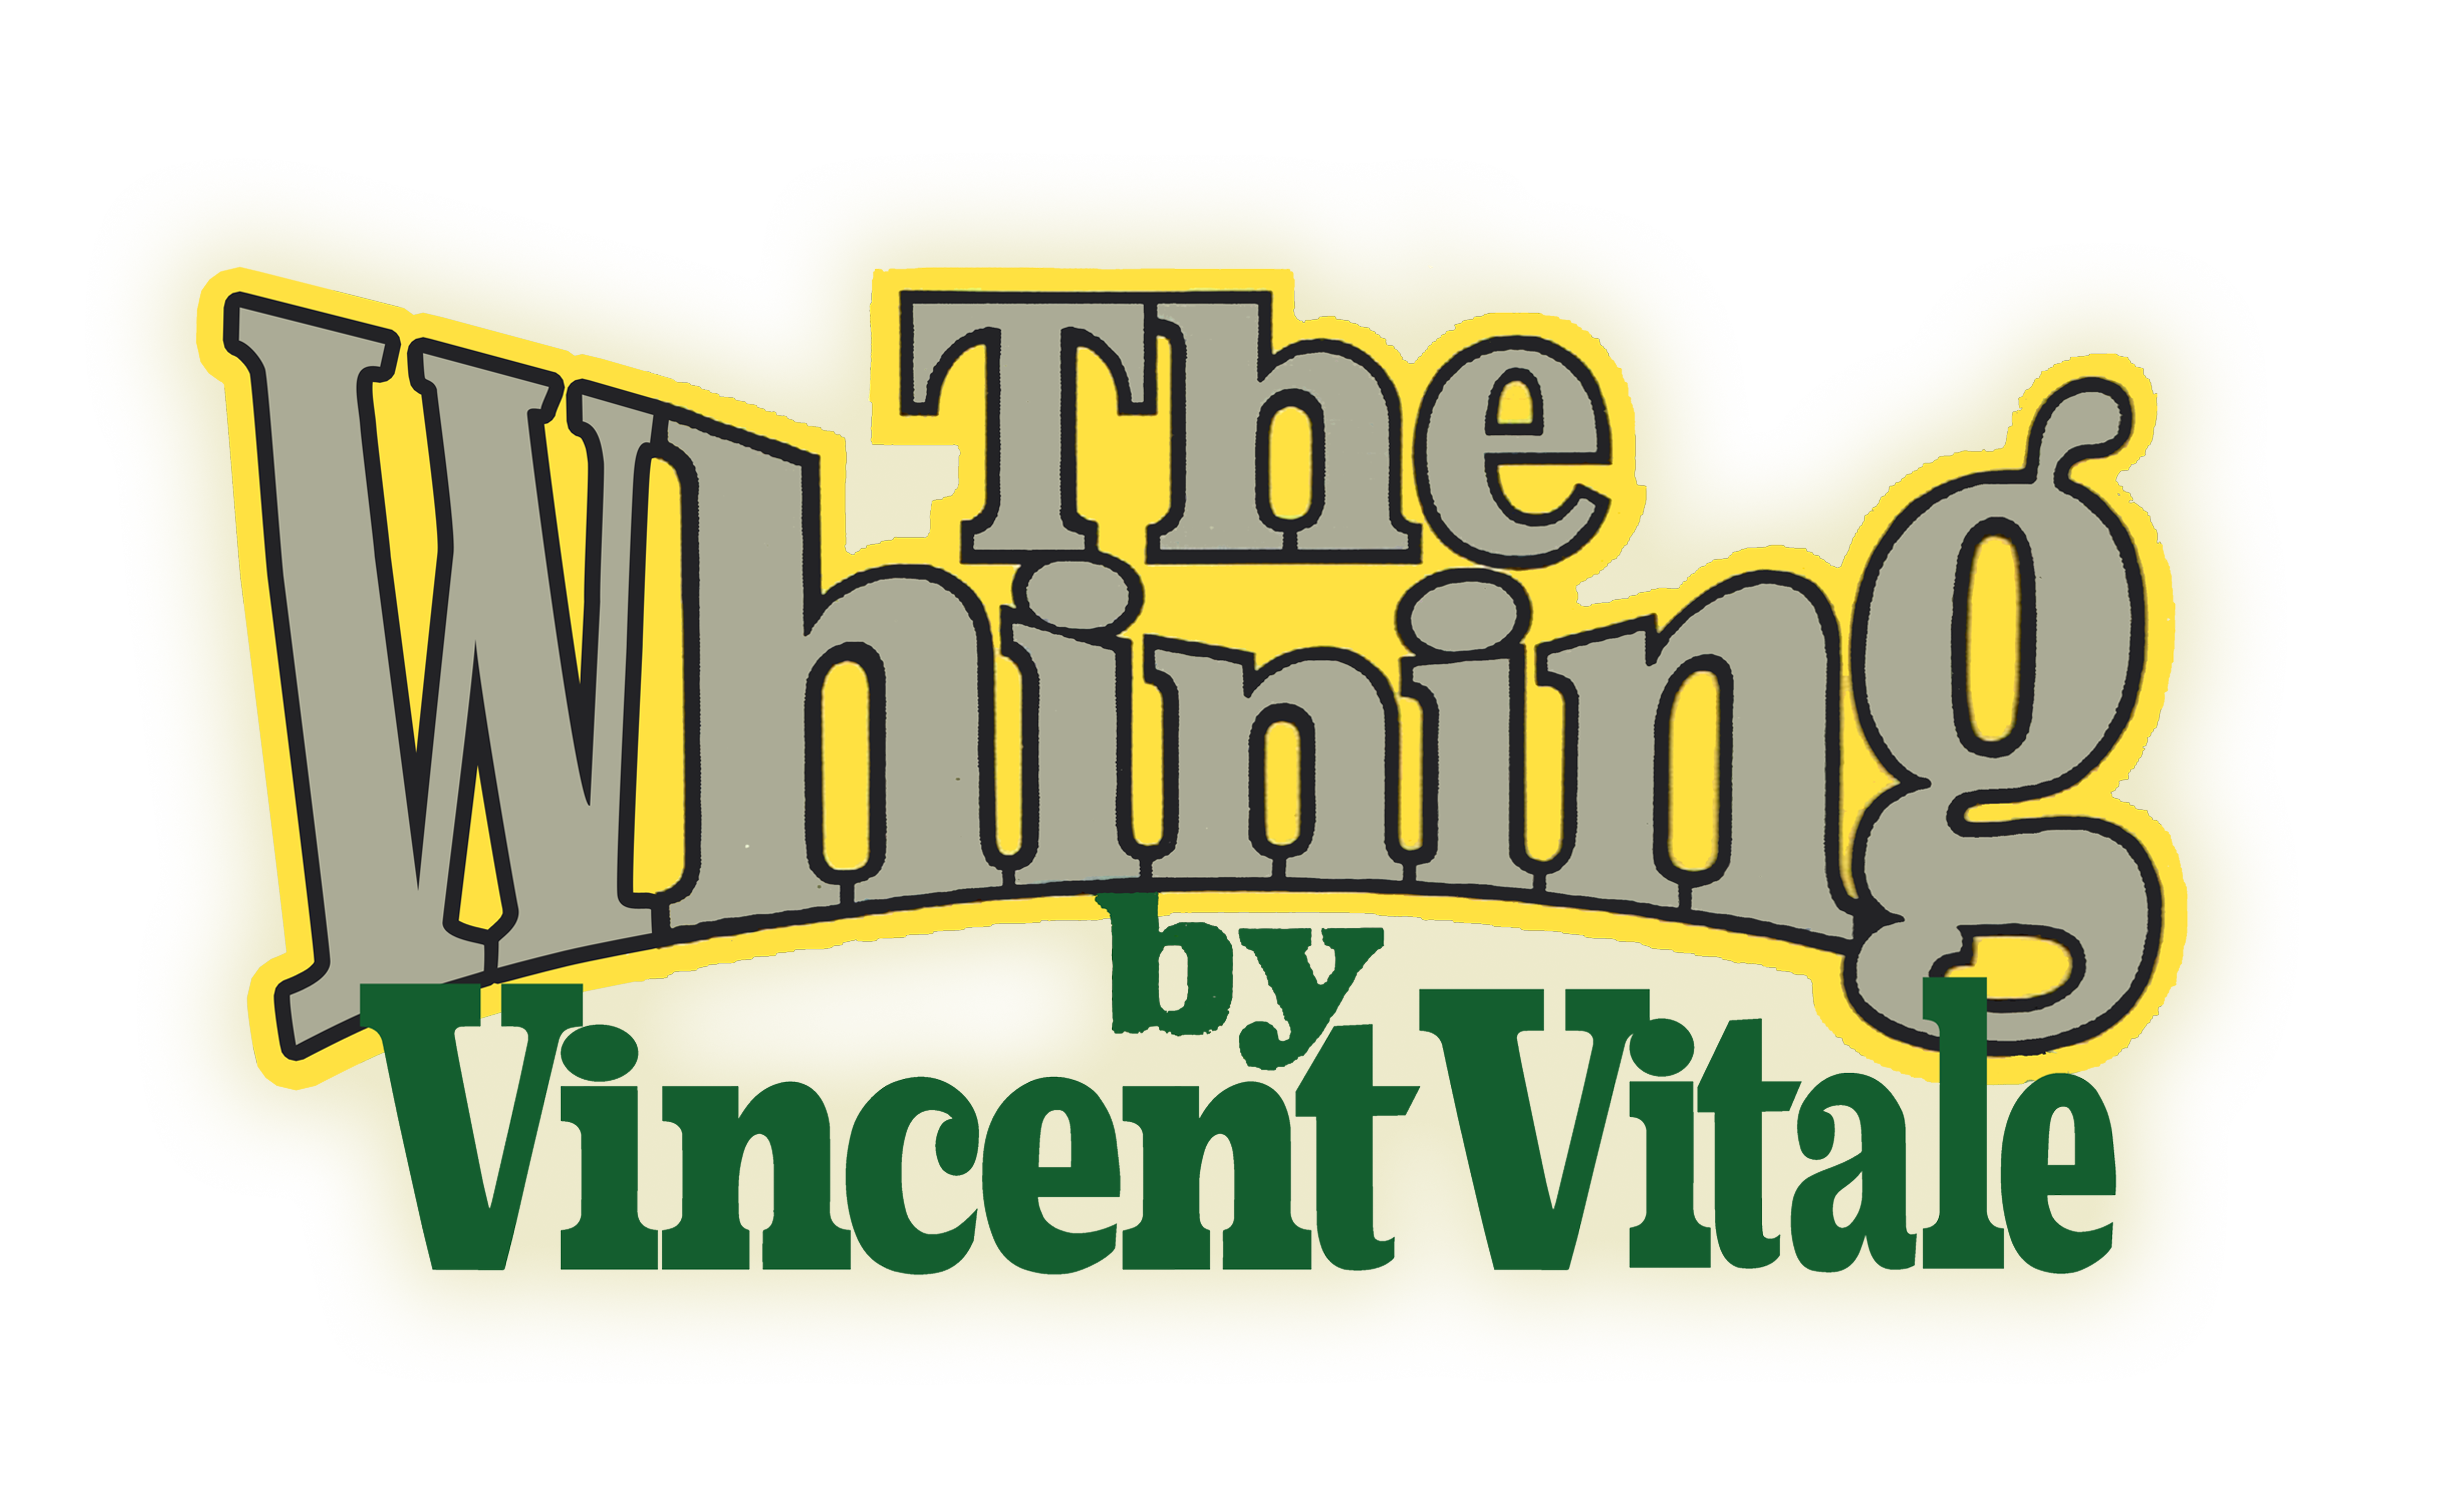 The Whining